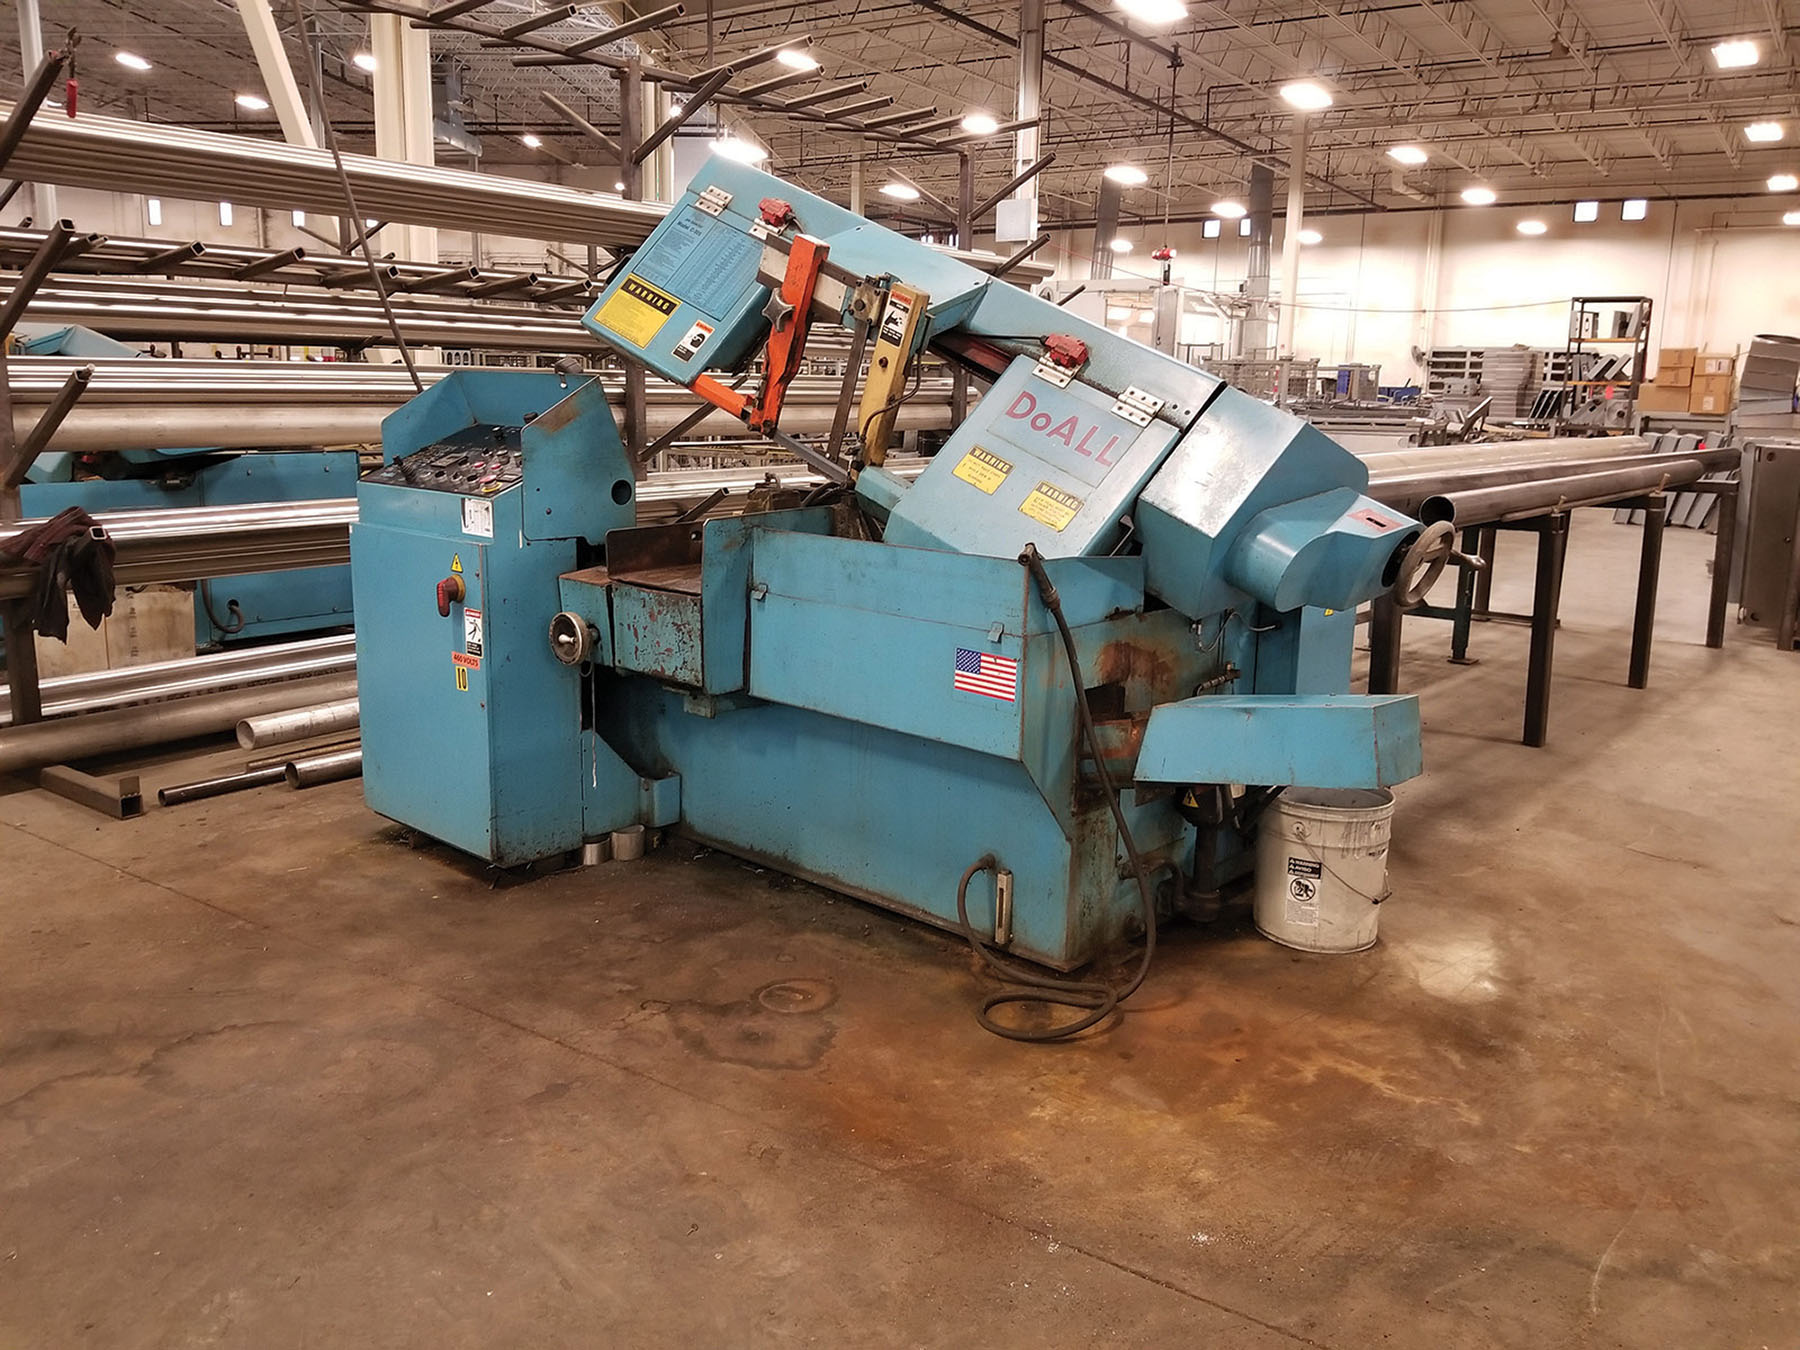 Lot 1 - DOALL C-305 A AUTOMATIC HORIZONTAL BAND SAW, S/N 534-00314, 12' BAND LENGTH, LIMIT SWITCH &